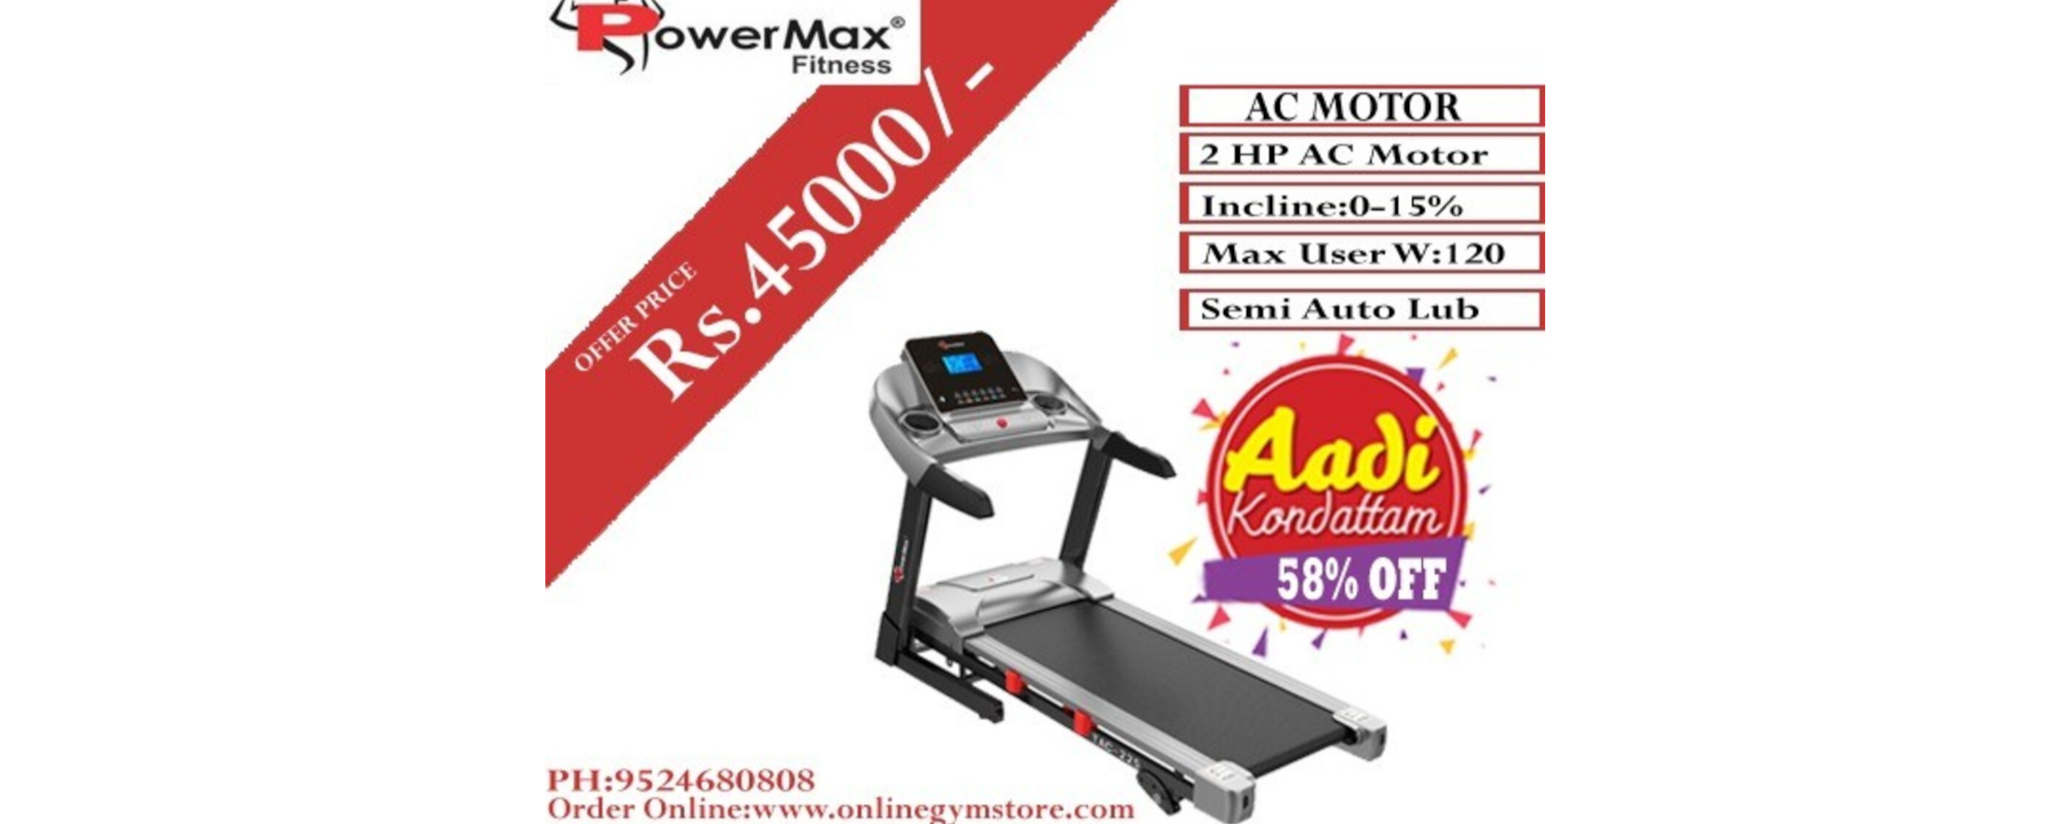 TAC225 AC MOTOR TREADMILL POWERMAX TREADMILL TAC-225 AC MOTORIZED TREADMILL WITH MP3 AND IPAD HOLDER Bring home the all-new TAC-225 AC MOTORIZED TREADMILL brought to you by PowerMax for your home gym. Possessing a top speed of 14 km per hour and starting from 0.8 km per hour powered by a 2.0 Horse Power AC motor makes this equipment very suitable for cardio and also saves energy. This TAC-225 AC MOTORIZED TREADMILL meets modern features as it has a 5-inch LCD blue screen where parameters such as the time, speed, distance traveled, calories, pulse, etc can be monitored. Also add ons such as USB, AUX, Mp3, iPad holder are also present on it. The benefits of running on this treadmill are quite a lot. A high amount of calorie burns, outside weather not hampering workouts, and technically very safe than running outside the house.  QUALITY AND ATTRACTION. The stylish and elegant look makes the treadmill even more attractive. The ergonomic design makes the user comfortable in operating it and enjoy during the running time. It falls in an affordable range which makes it even more attractive to people. The diamond wave running belt and the anti-bacterial coat finish make it stylish and hygienic respectively.  EASY TO USE The TAC-225 AC MOTORIZED TREADMILL is very user-friendly, from walking to jogging to normal running, step by step, allowing you to better adapt to the running state. You can control the speed and stop the brake at any time on the LCD control panel. It also has a semi-automated lubrication system. It has a 0-15% auto inclination range which can be operated with ease and hence can improve the resistance needed for the workout.  MAXIMUM USER WEIGHT AND RUNNING SURFACE The maximum user weight capacity is 120kg. The running surface has a certain thickness and has been made in such a way that the entire workout remains comfortable. The space provided for running is 49.2 inches lengthwise and 16.9 inches breadthwise. Precision-machined, steel crowned rollers keep t